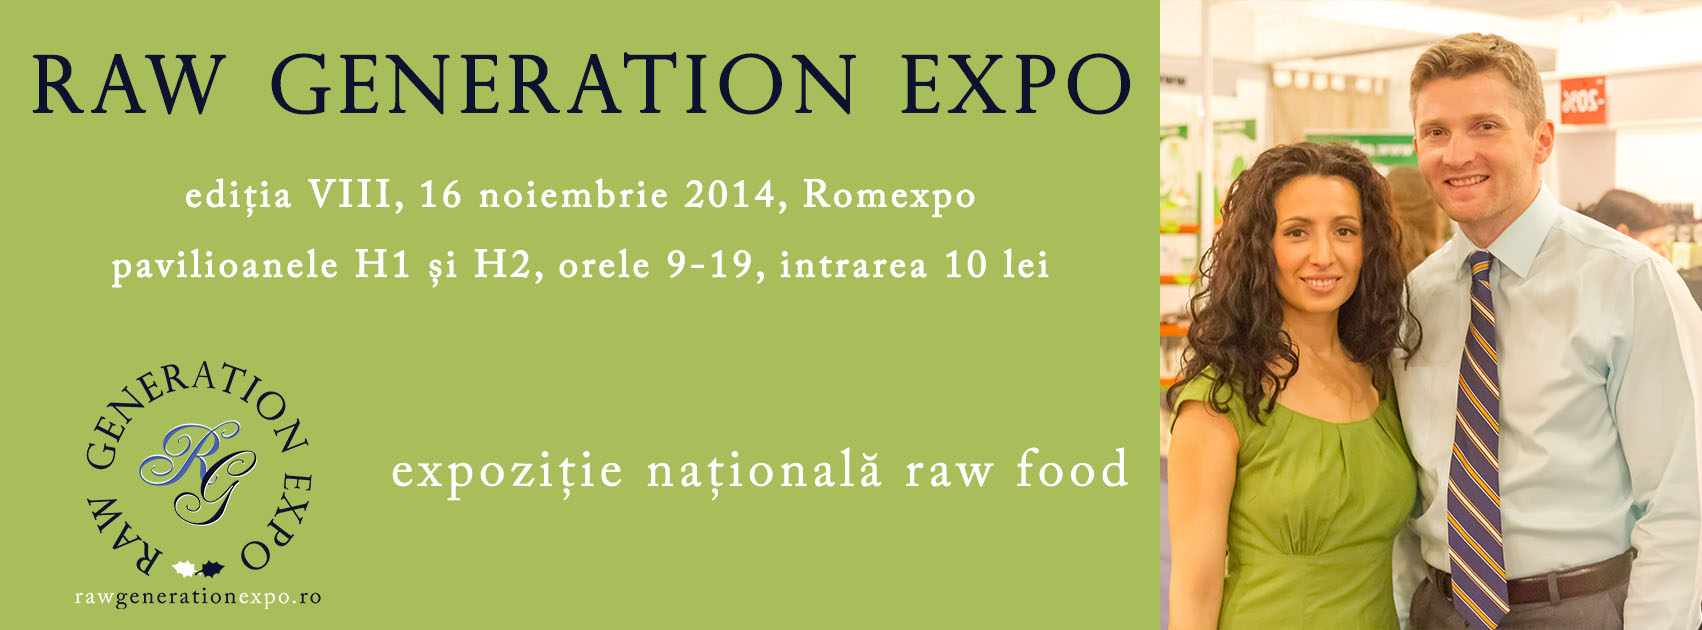 Raw Generation Expo – Editia VIII